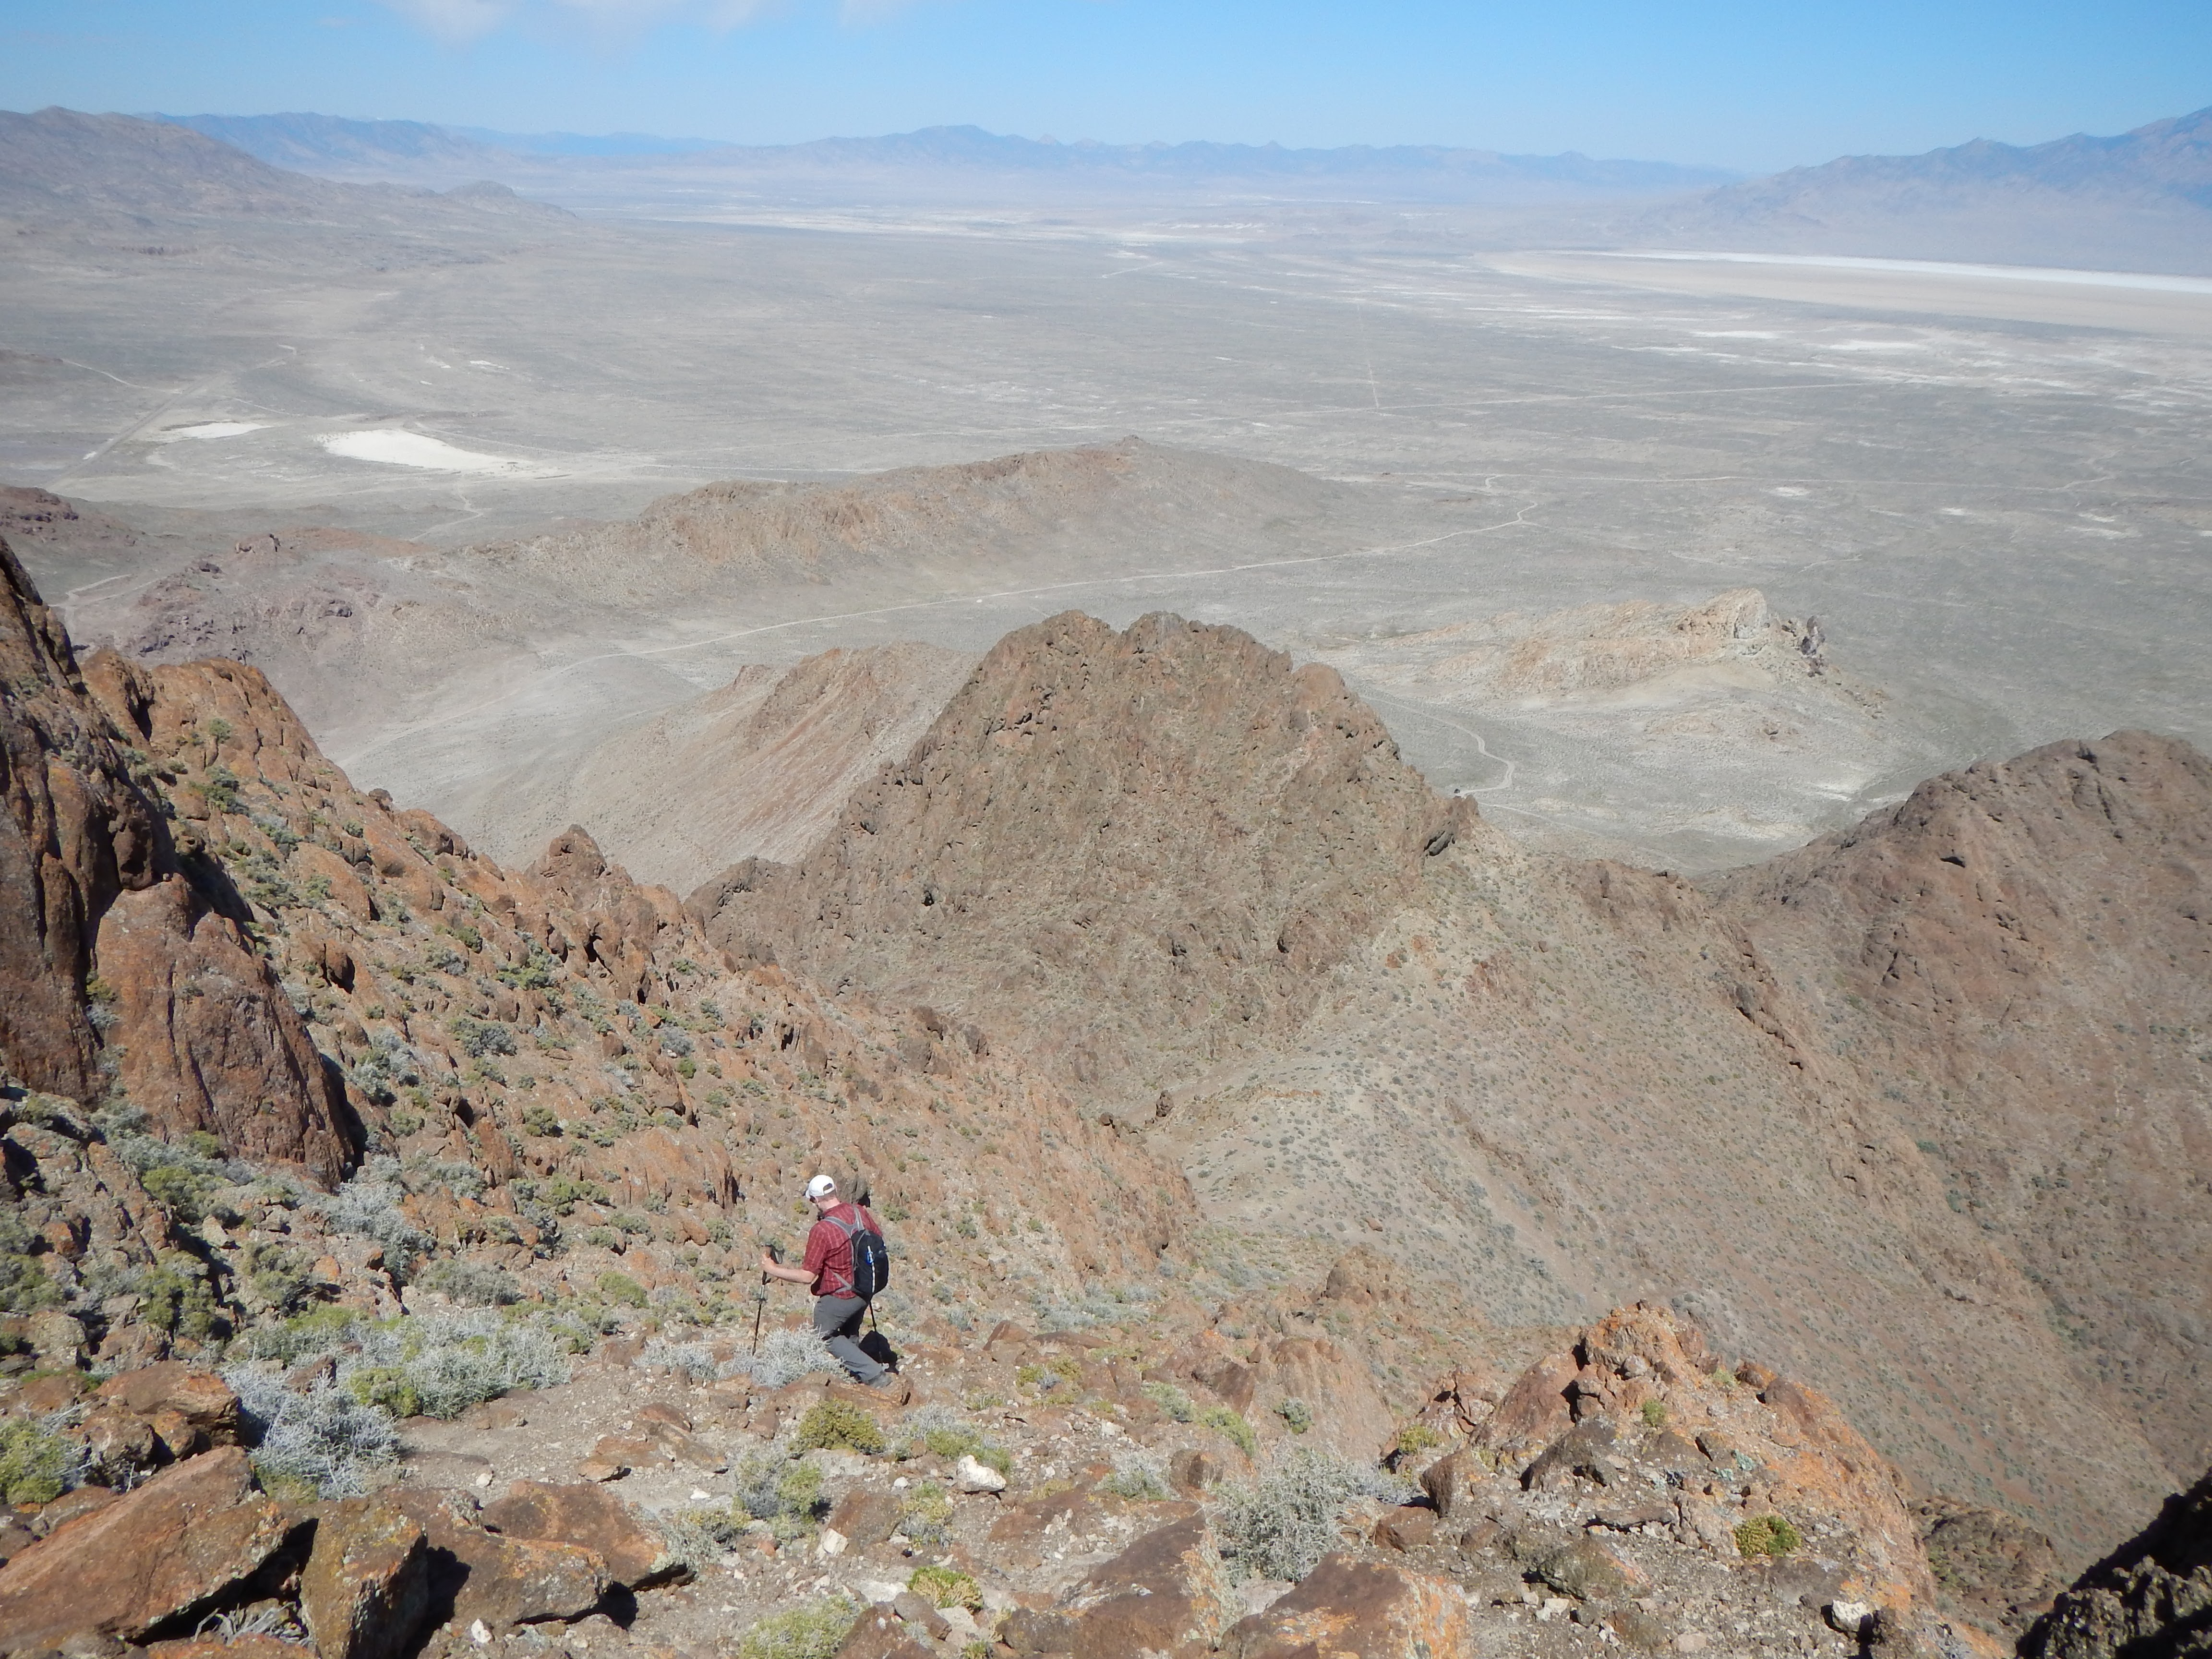 Photo: From the summit we can see the car far below.